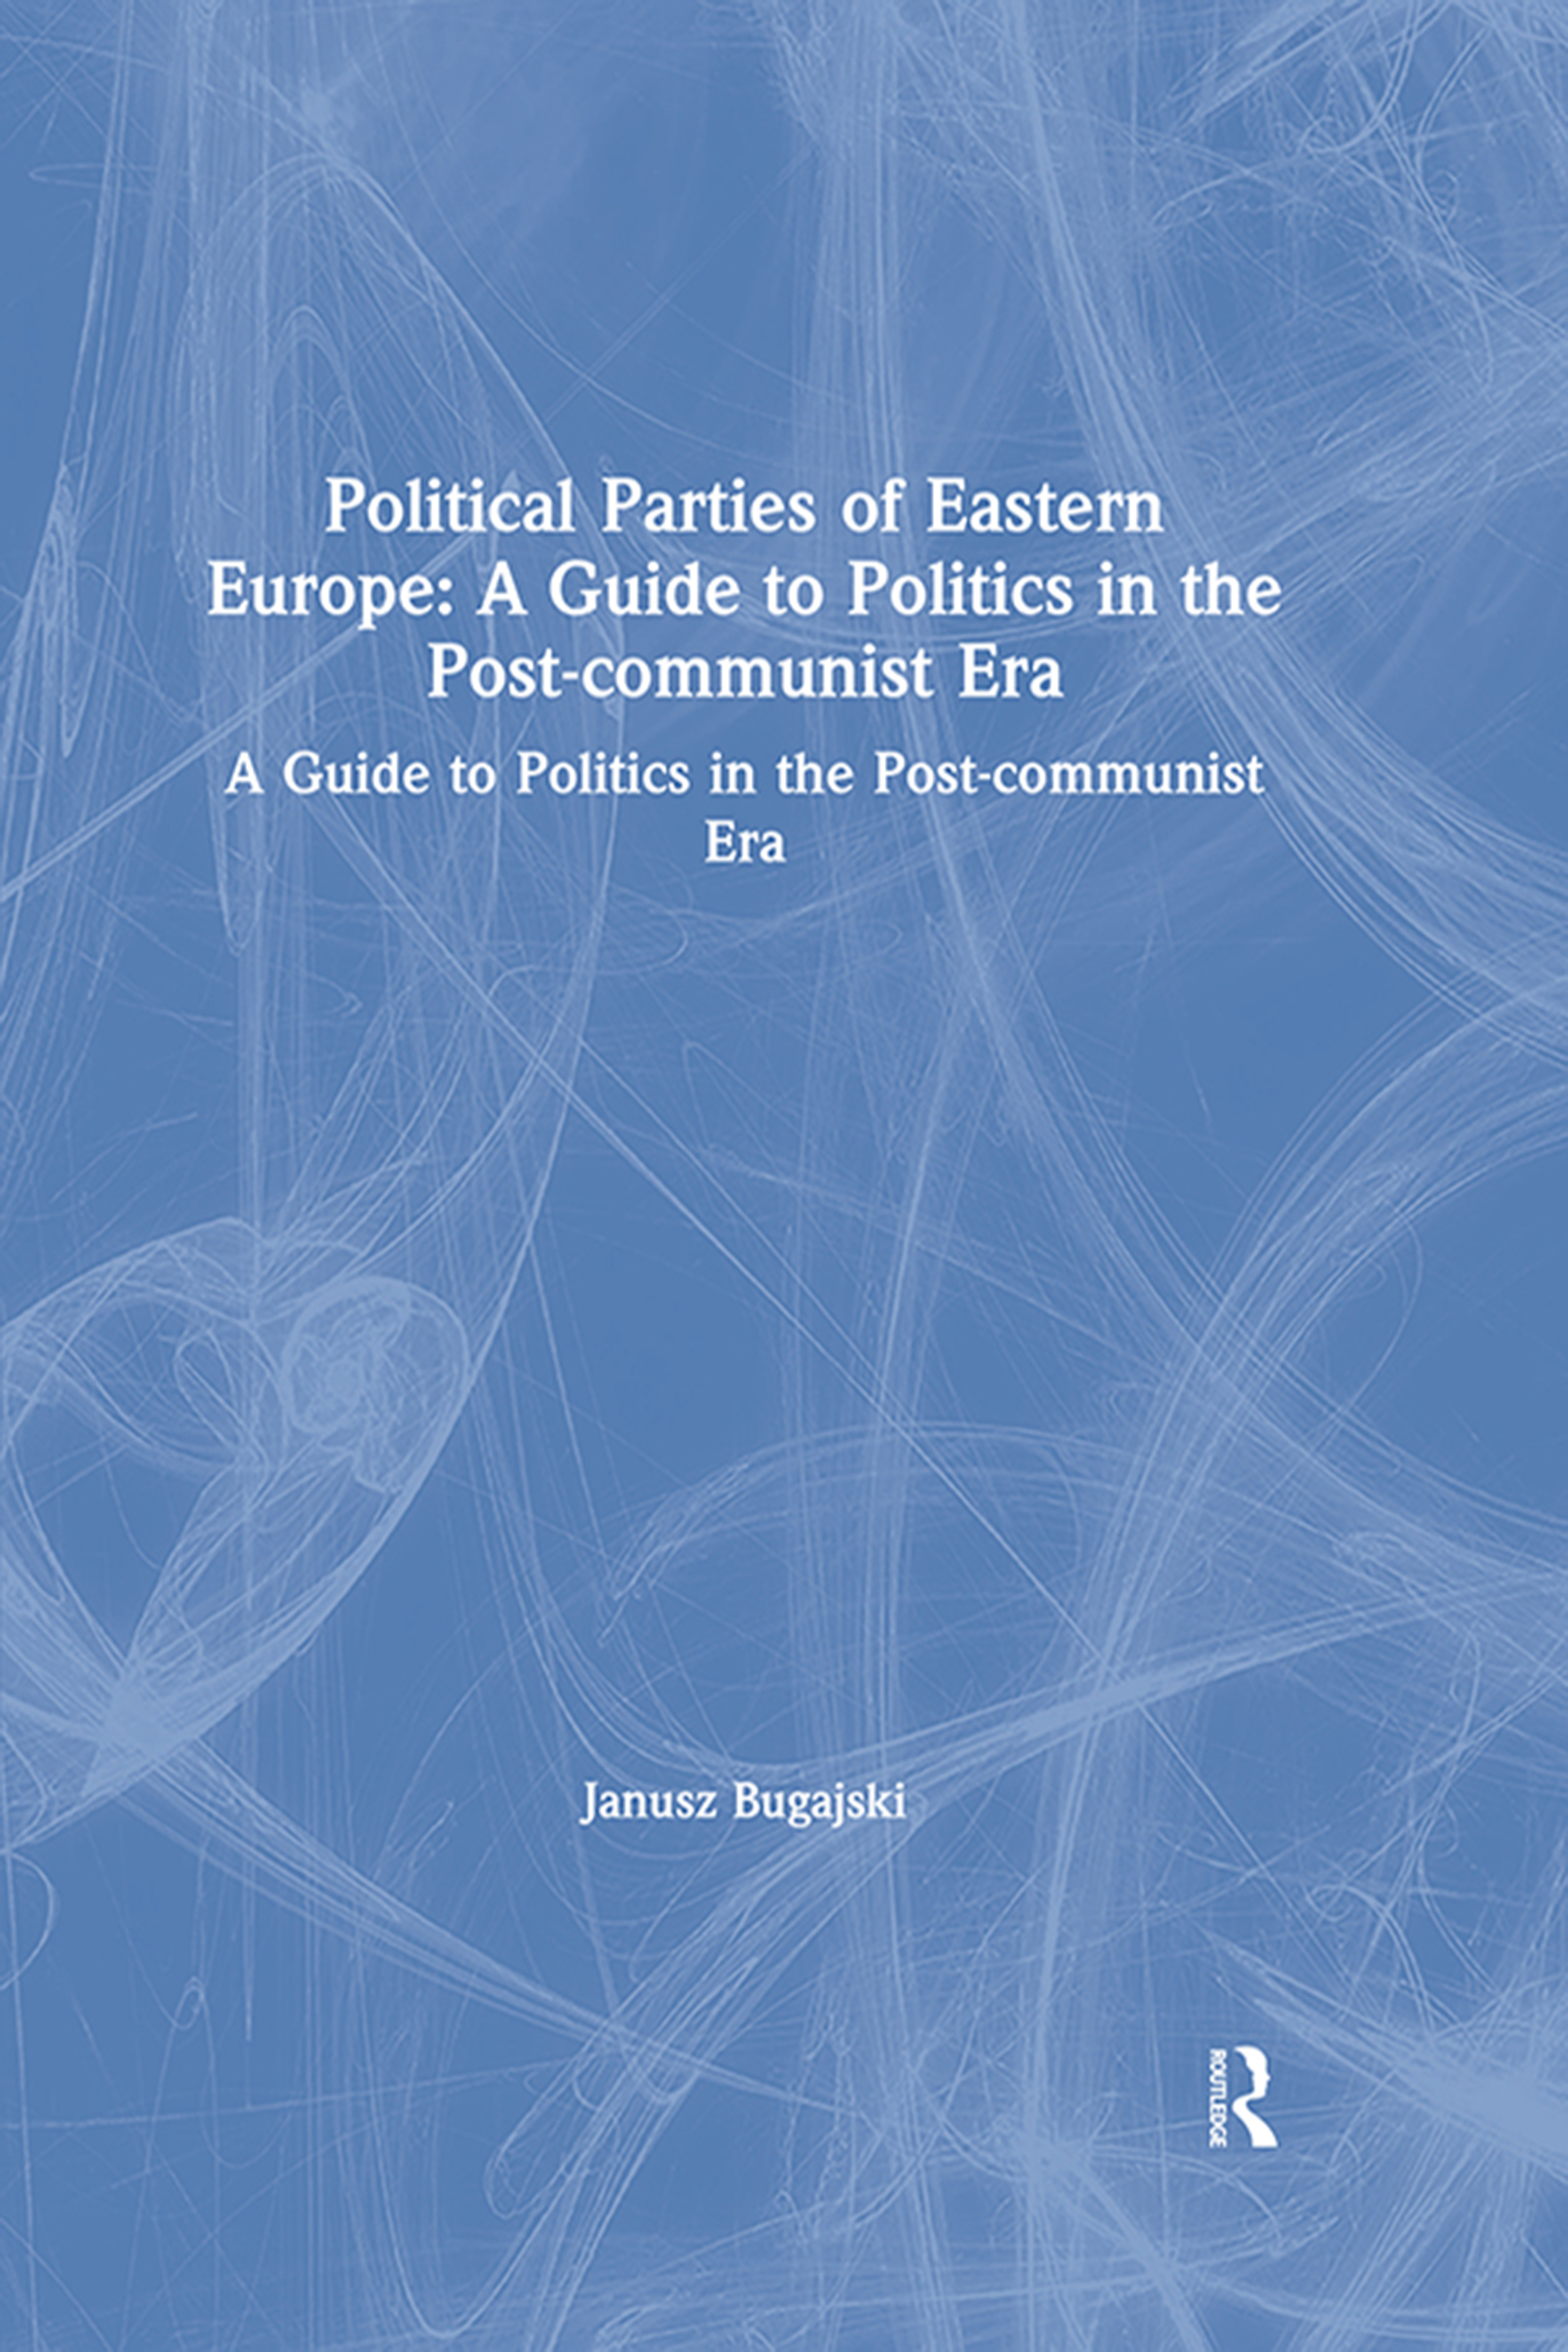 Political Parties of Eastern Europe: A Guide to Politics in the Post-communist Era